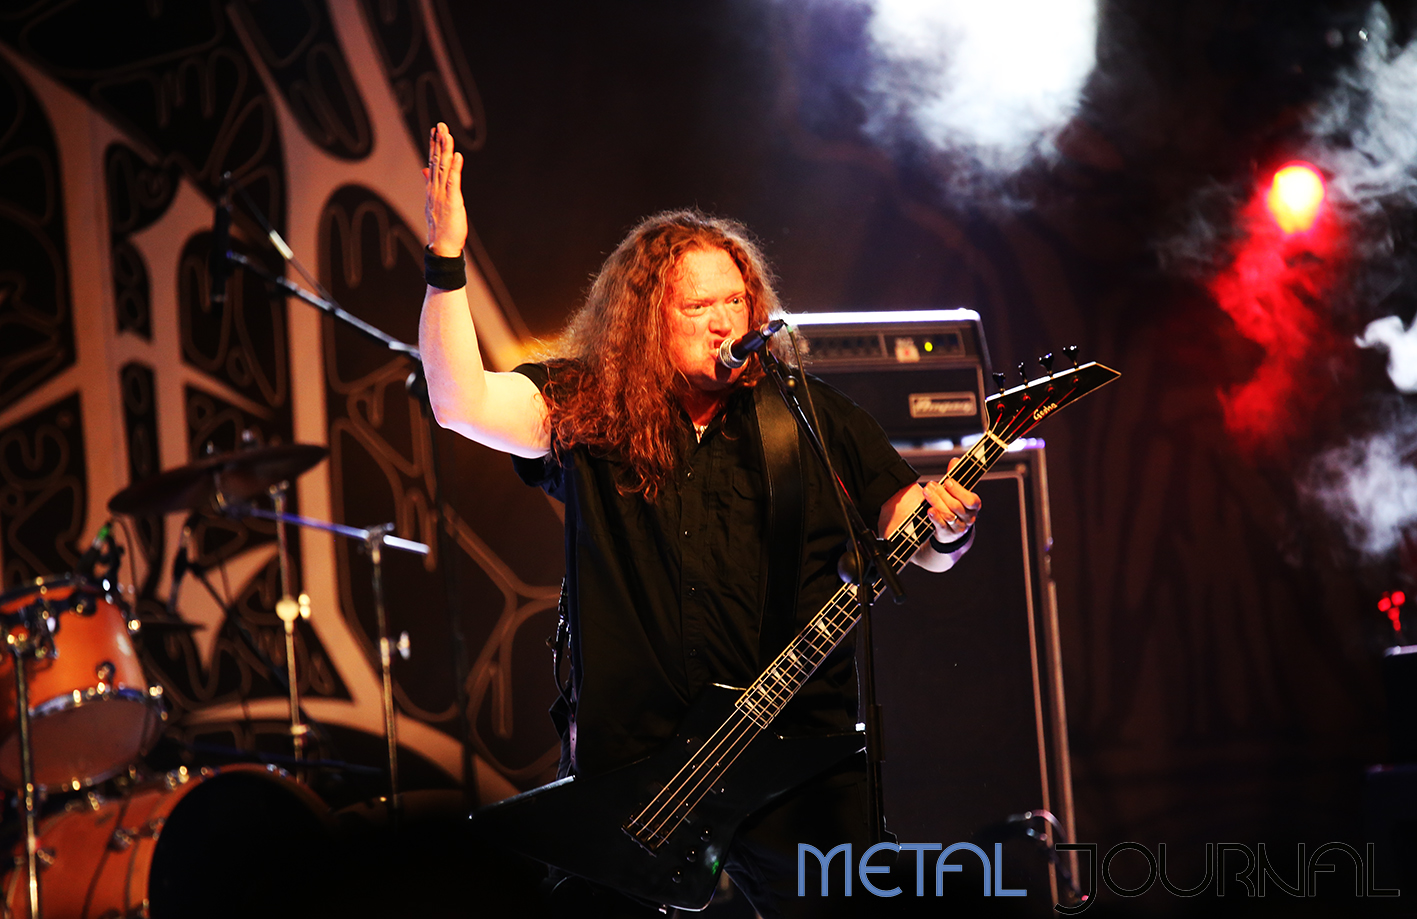 unleashed - leyendas del rock 2019 metal journal pic 2